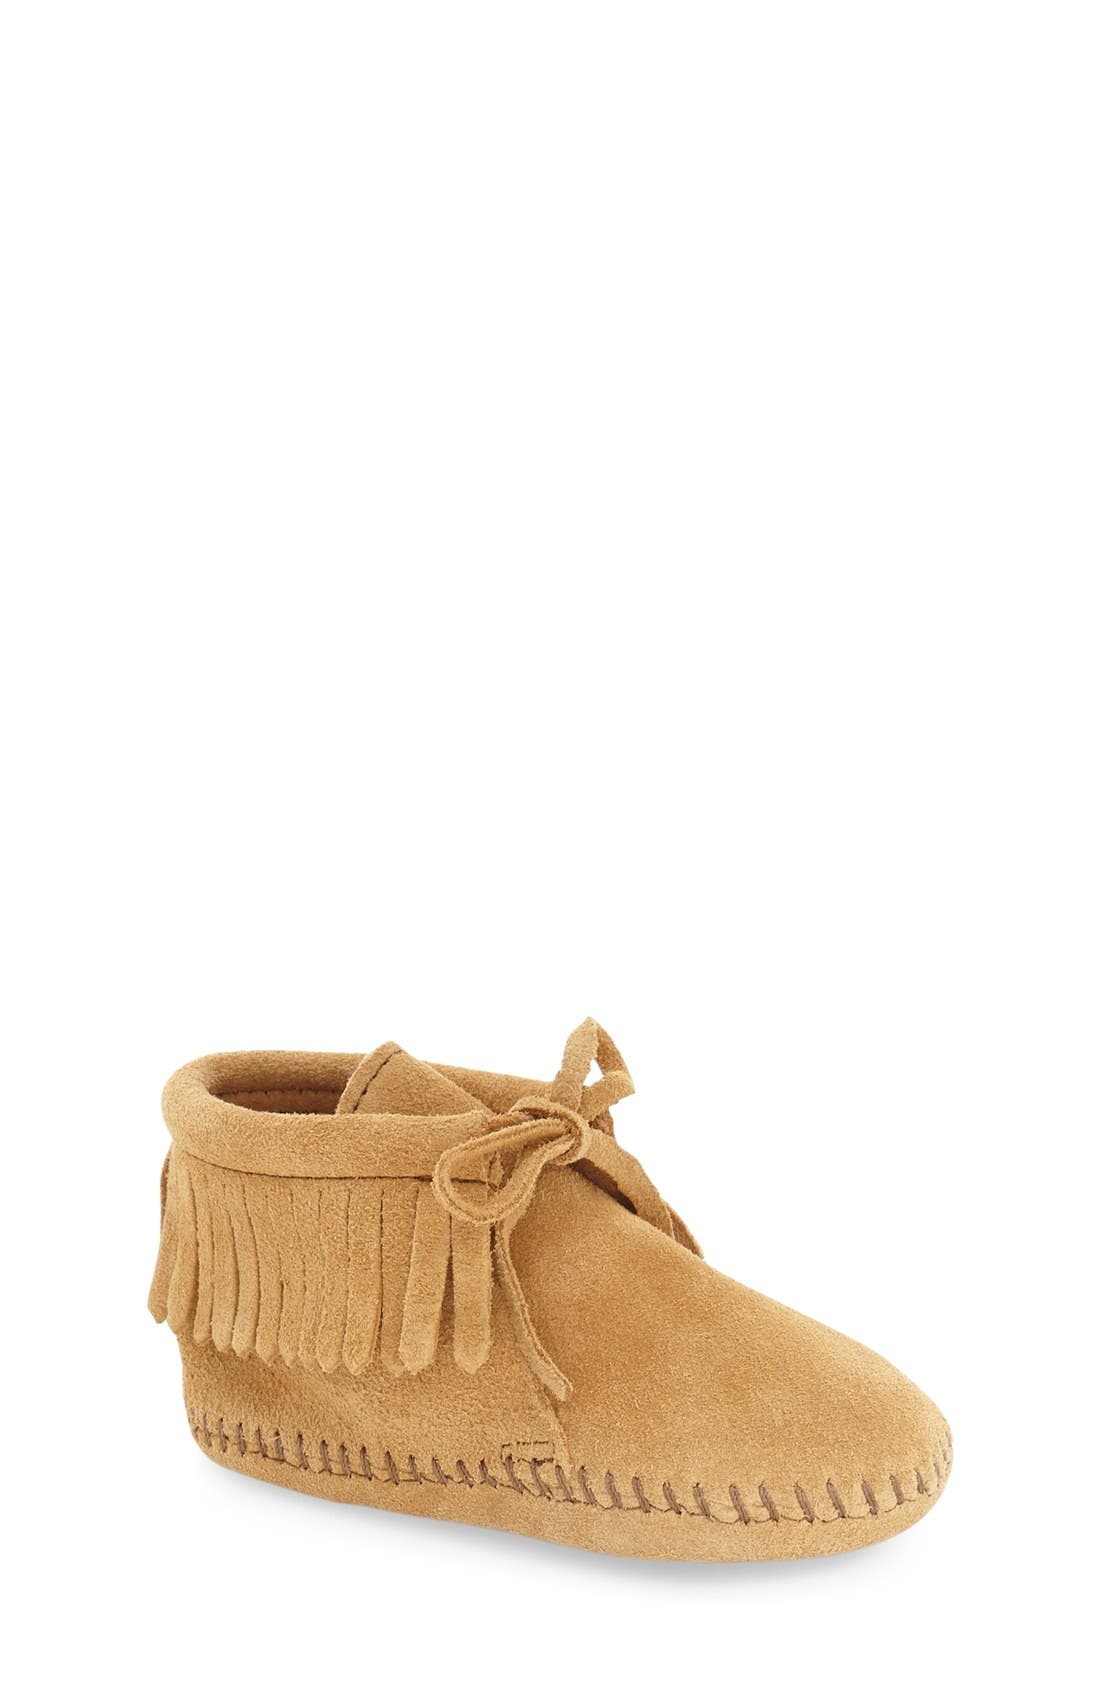 Fringe Bootie,                         Main,                         color, Tan Suede